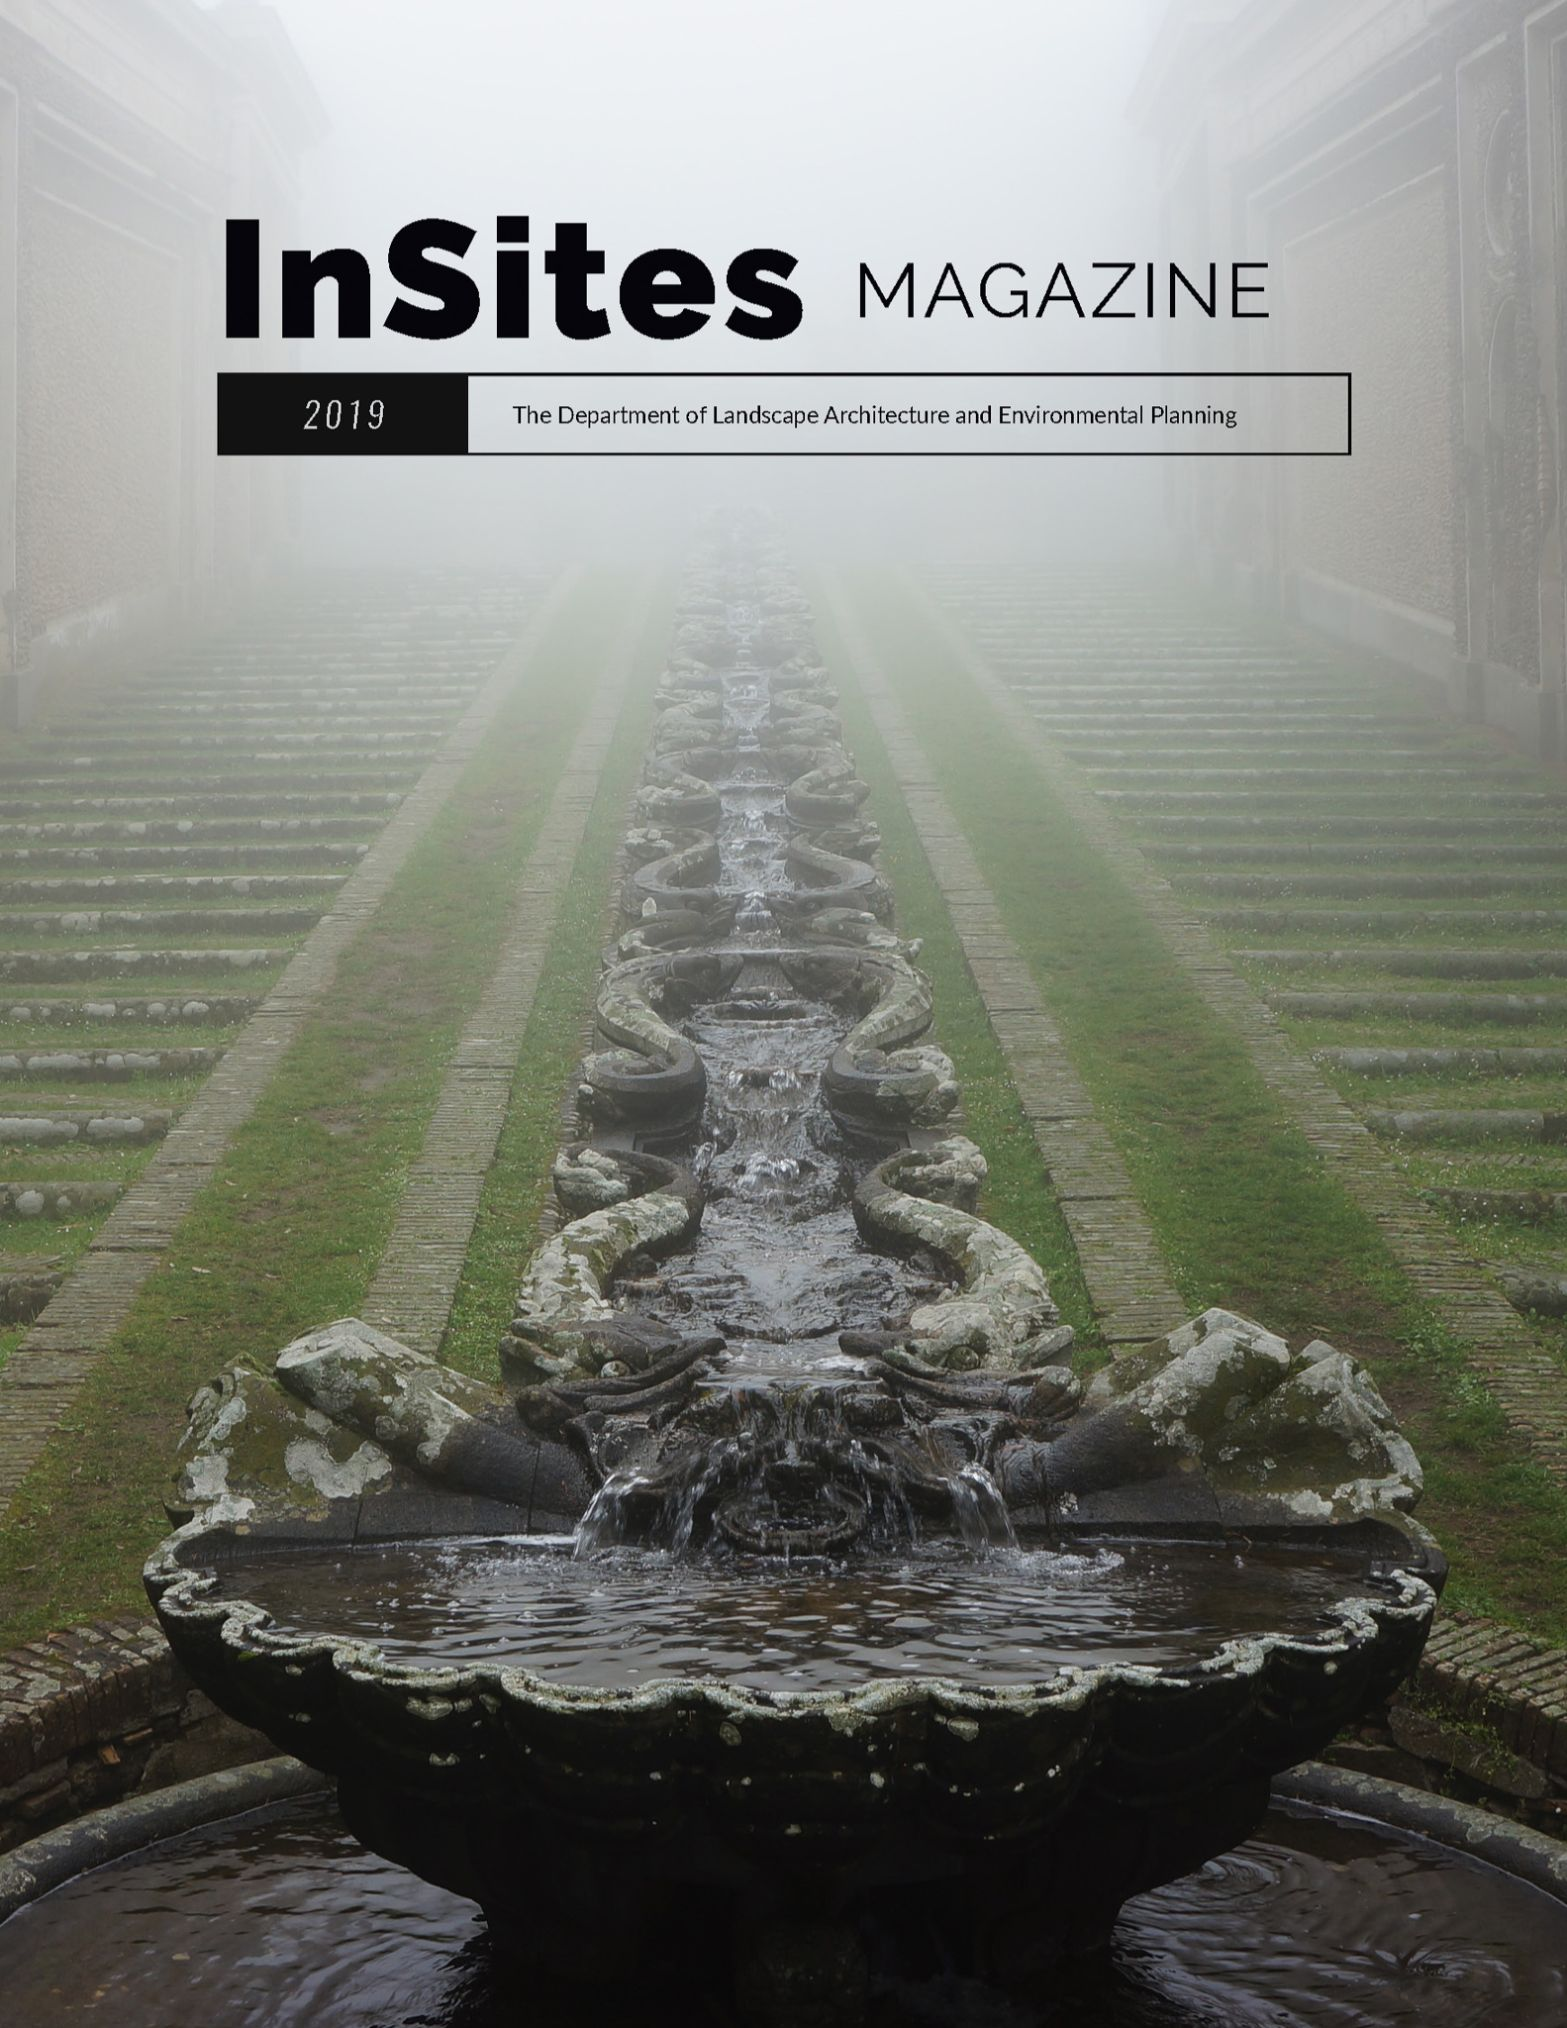 Magazine cover, fountain, green, fog